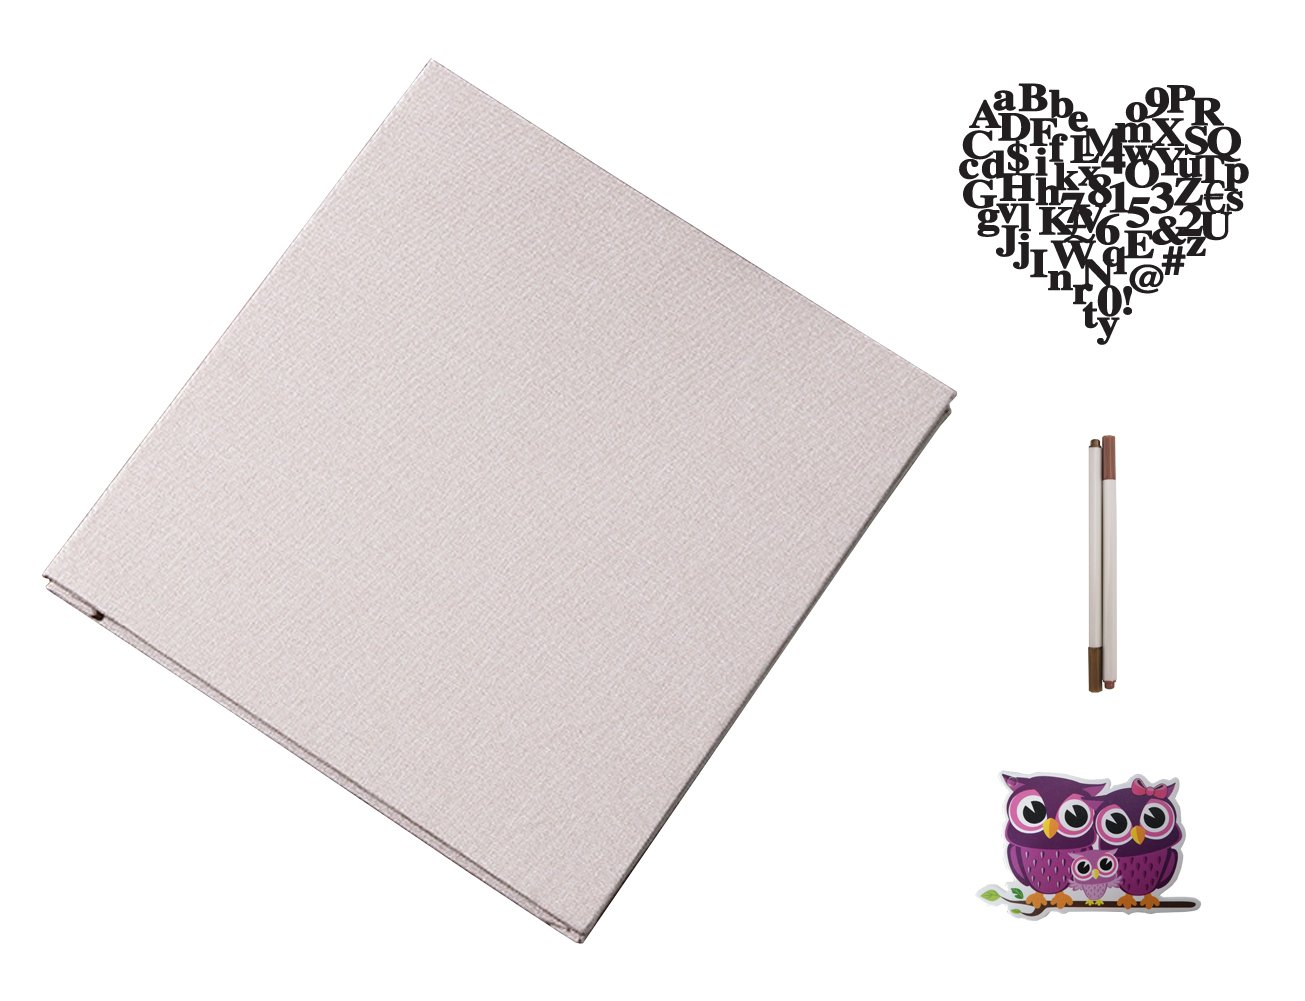 IDULL Expandable Linen Photo Album with White Magnetic Pages 8.5x11 (Beige) by IDULL